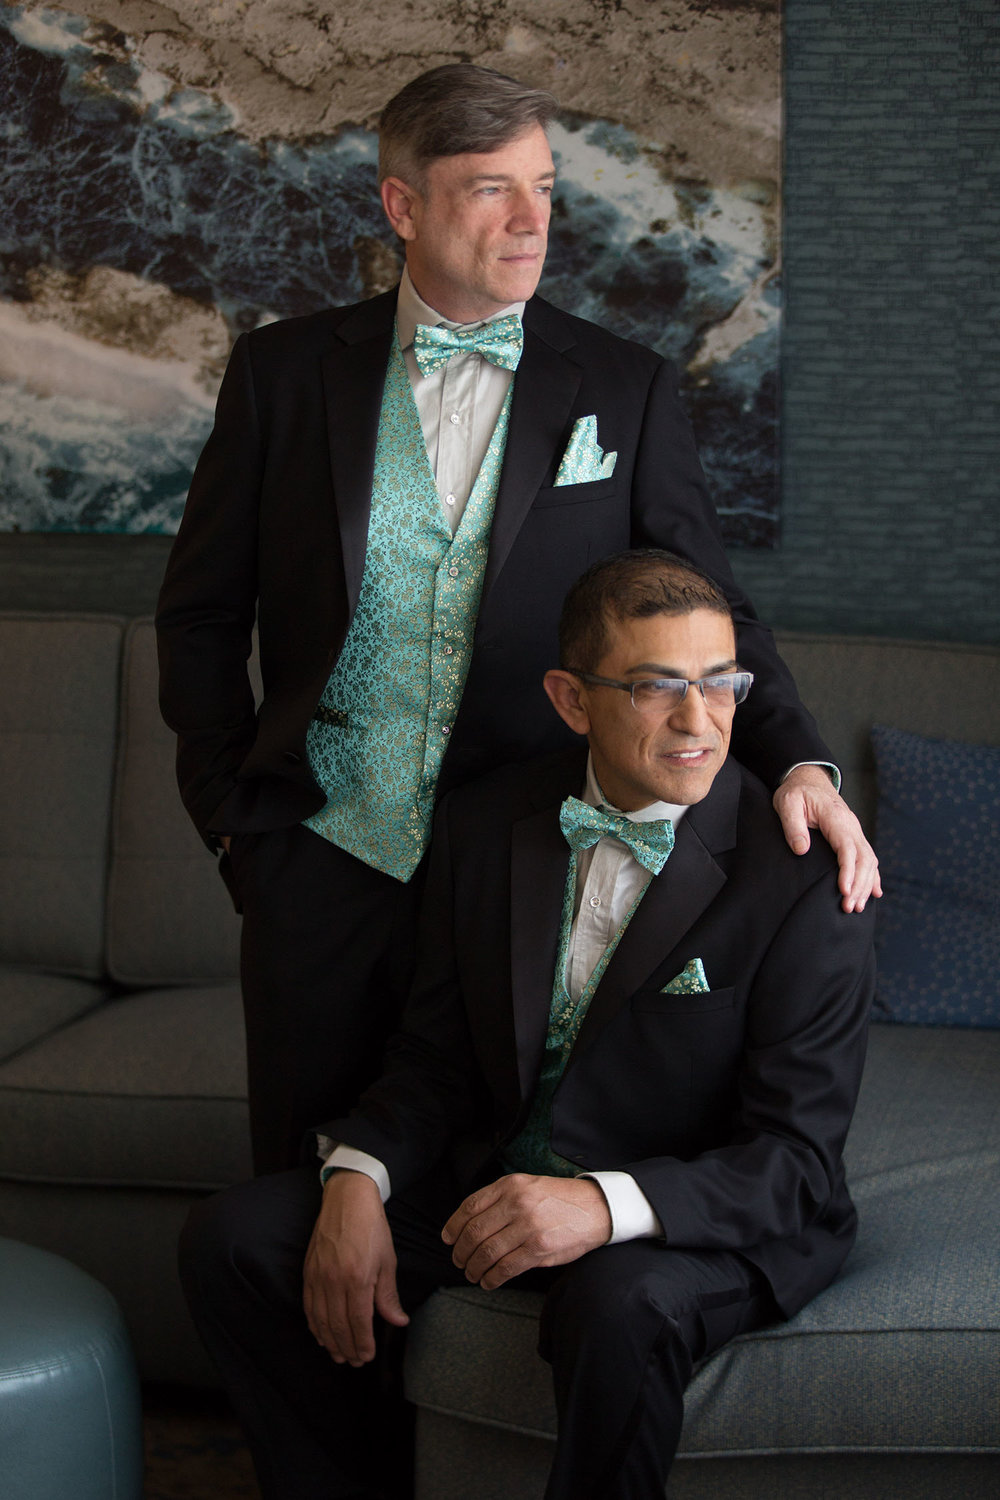 westin-dallas-downtown-wedding-same-sex.jpg